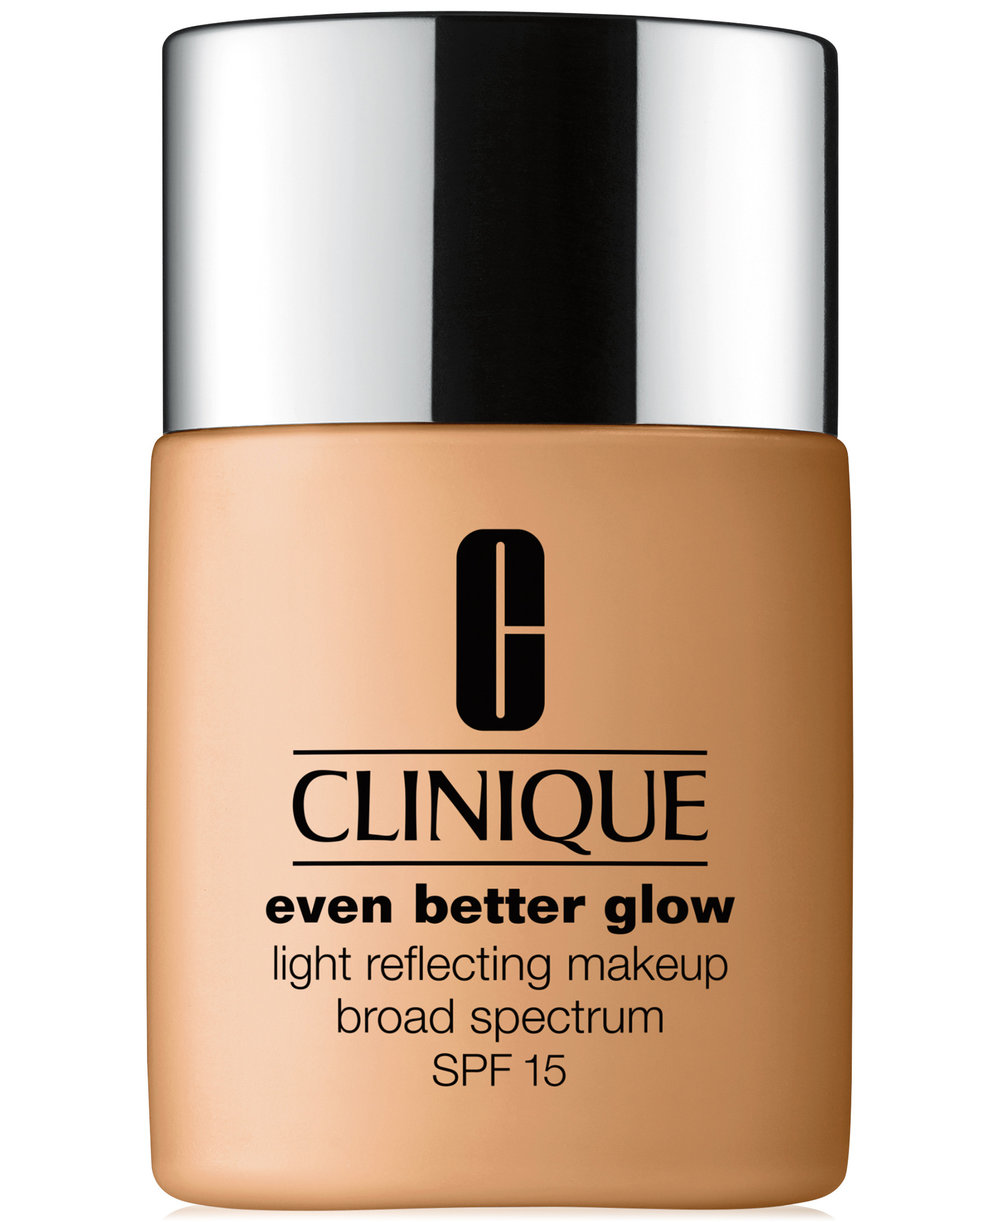 Clinique Even Better Glow Foundation SPF 15, 1-oz. - $29.00.jpg